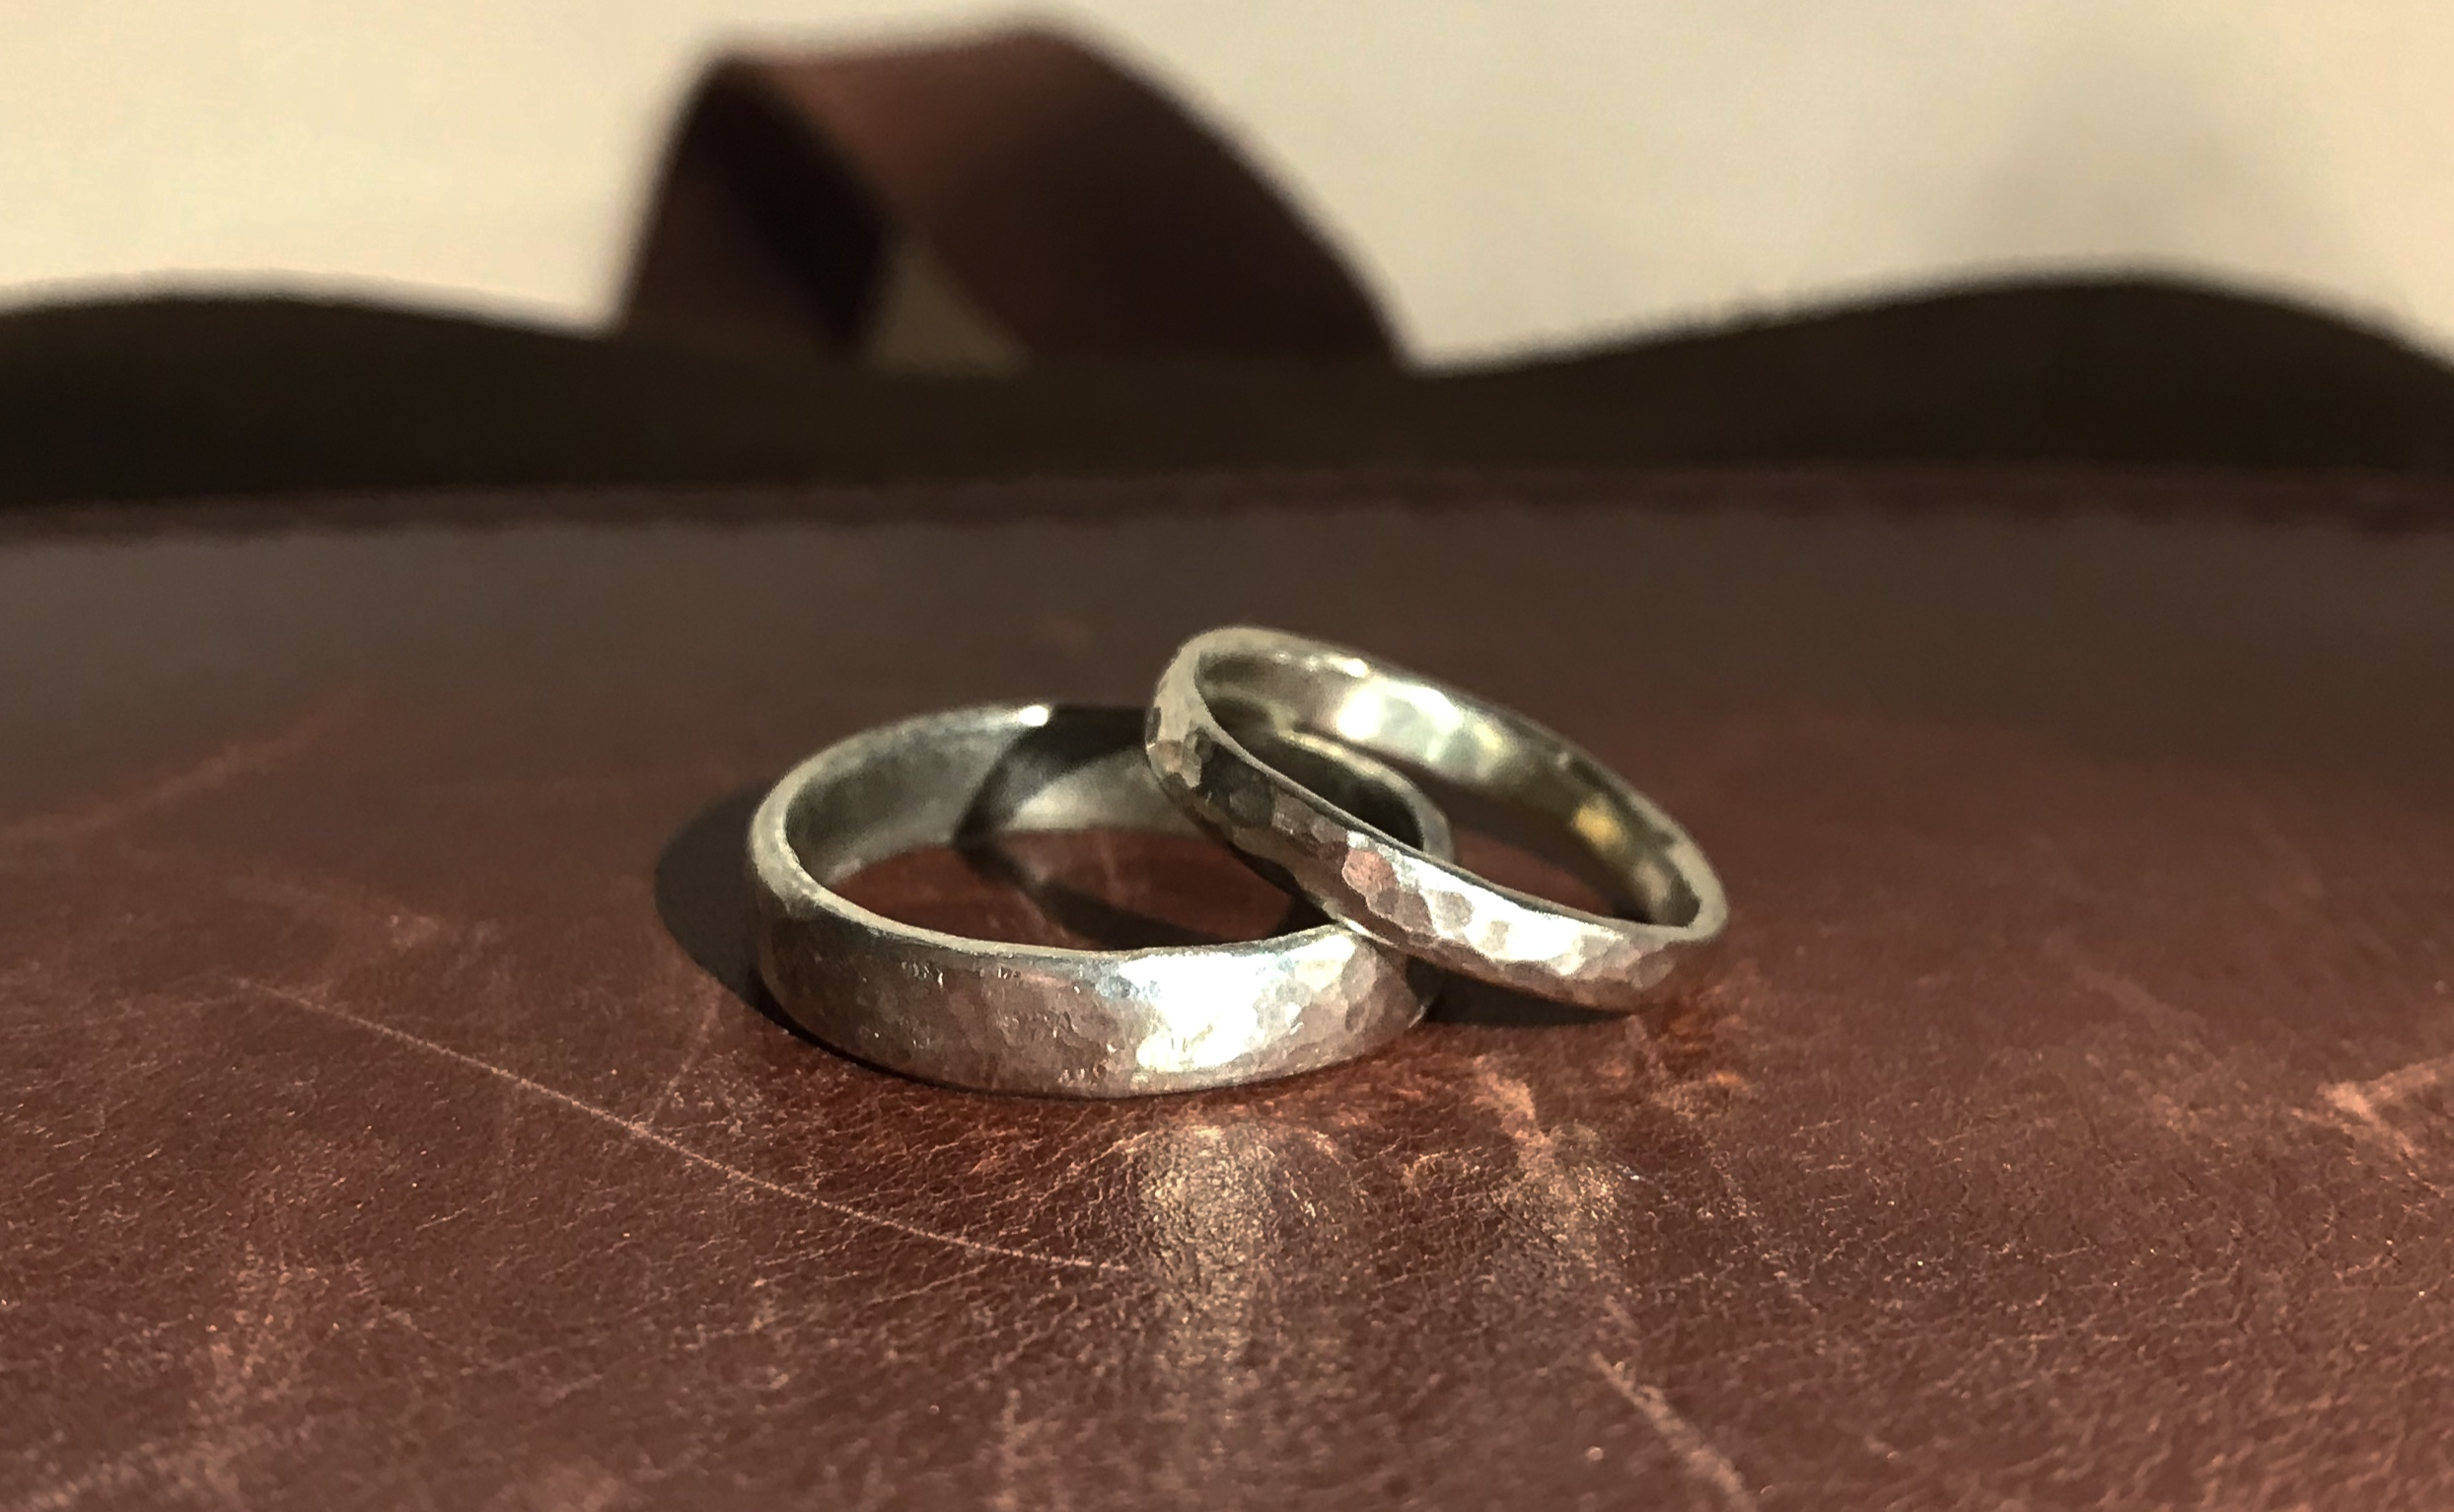 A pair of wedding rings in 9ct white gold, handmade by Charlotte and Darren from their   Make Your Own Wedding Rings   workshop with us at the end of February.